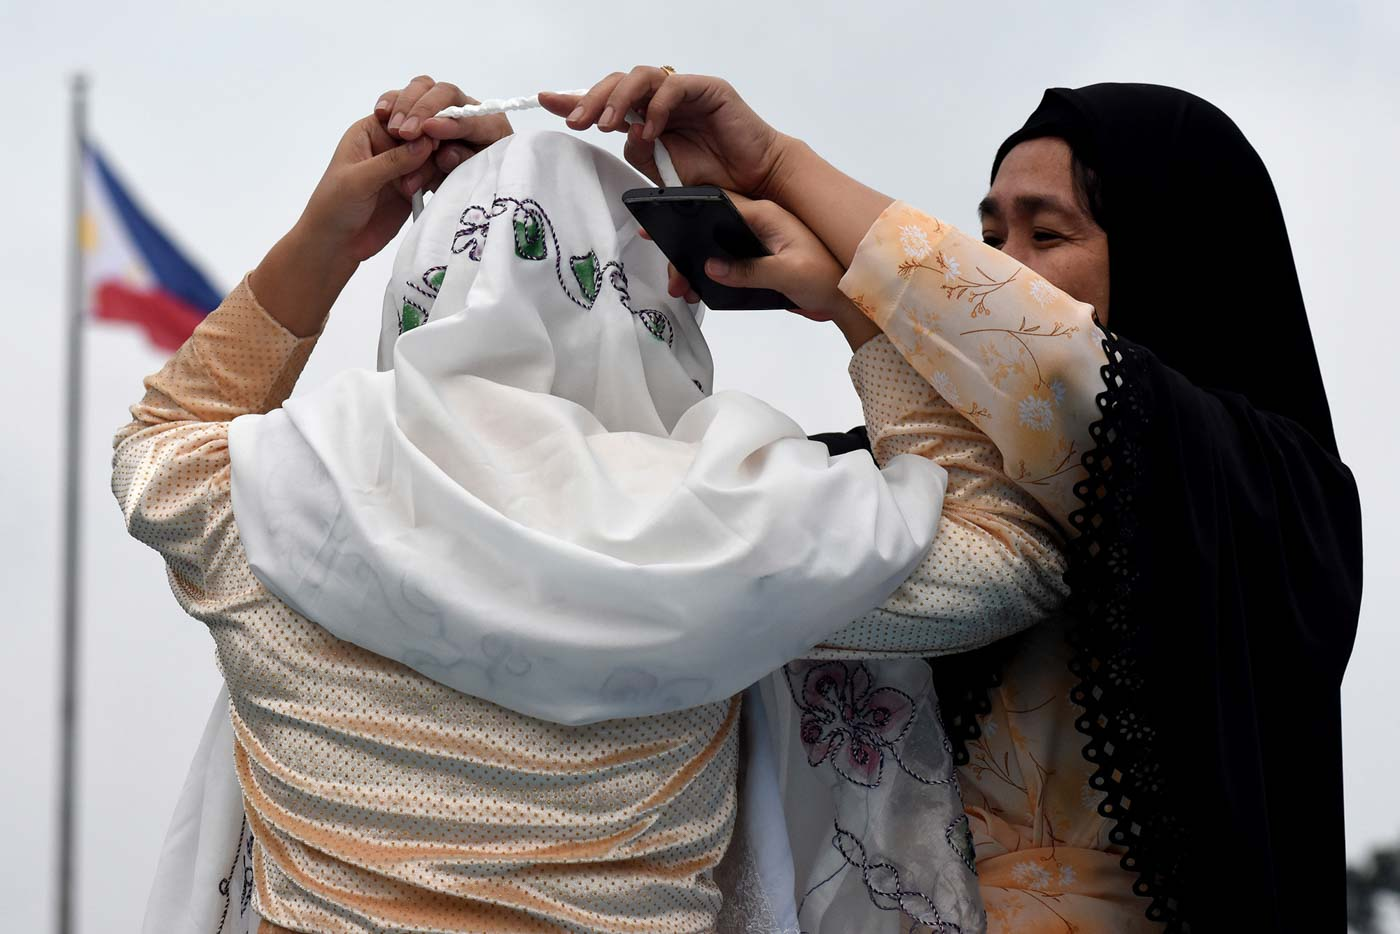 FIXING VEILS. A woman helps another fix her veil during the celebration of Eid'l Adha at the Quezon Memorial Circle on August 21, 2018. Photo by Angie de Silva/Rappler